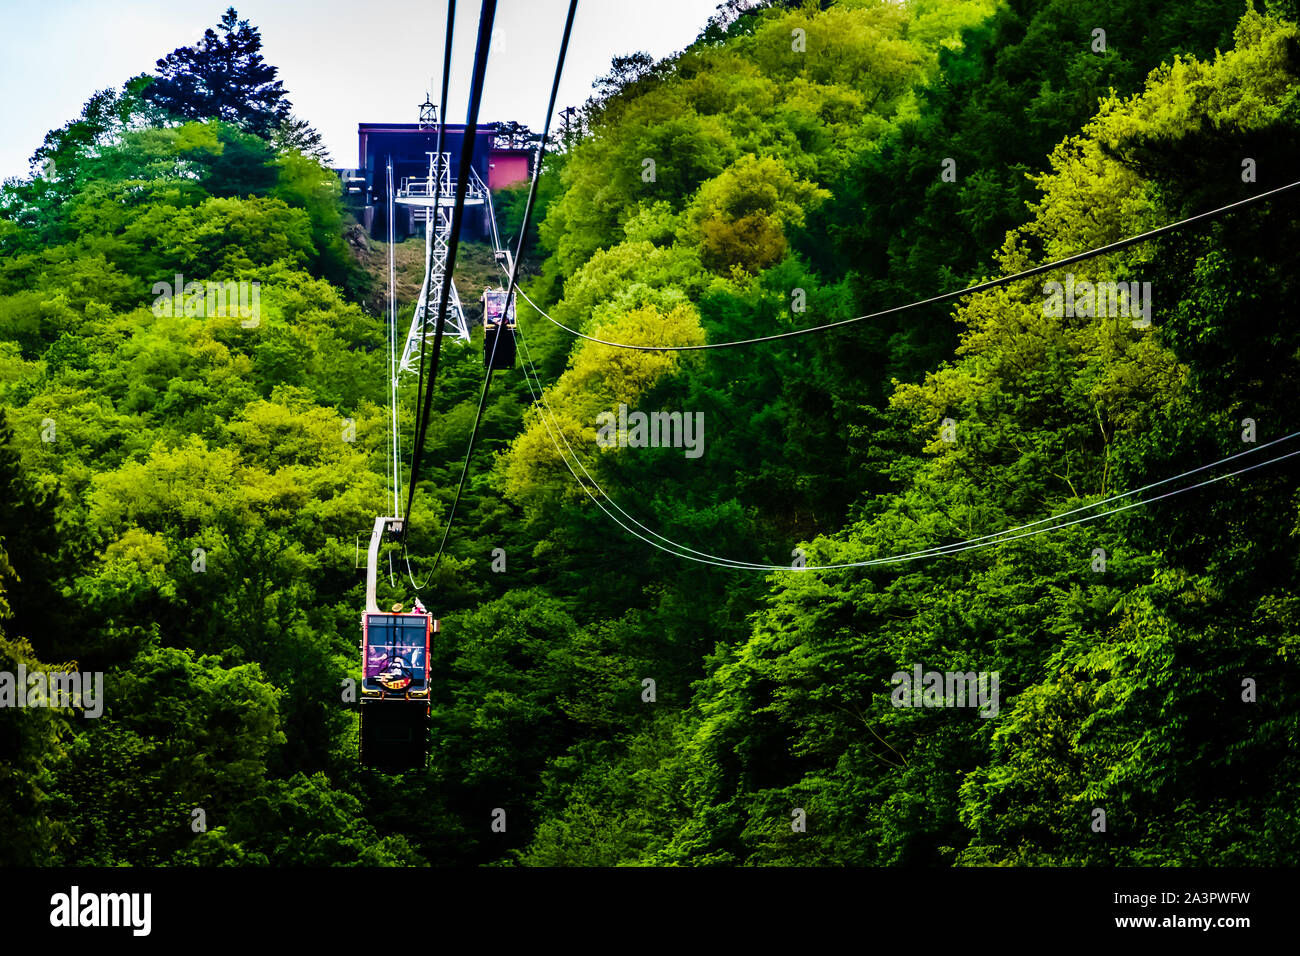 Tokyo, Japan - May 13, 2019: Mt. Kachikachi Ropeway to Tenjoyama Park. The cable car up to Tenjoyama Park, where you'll see a super view of Mt. Fuji. Stock Photo